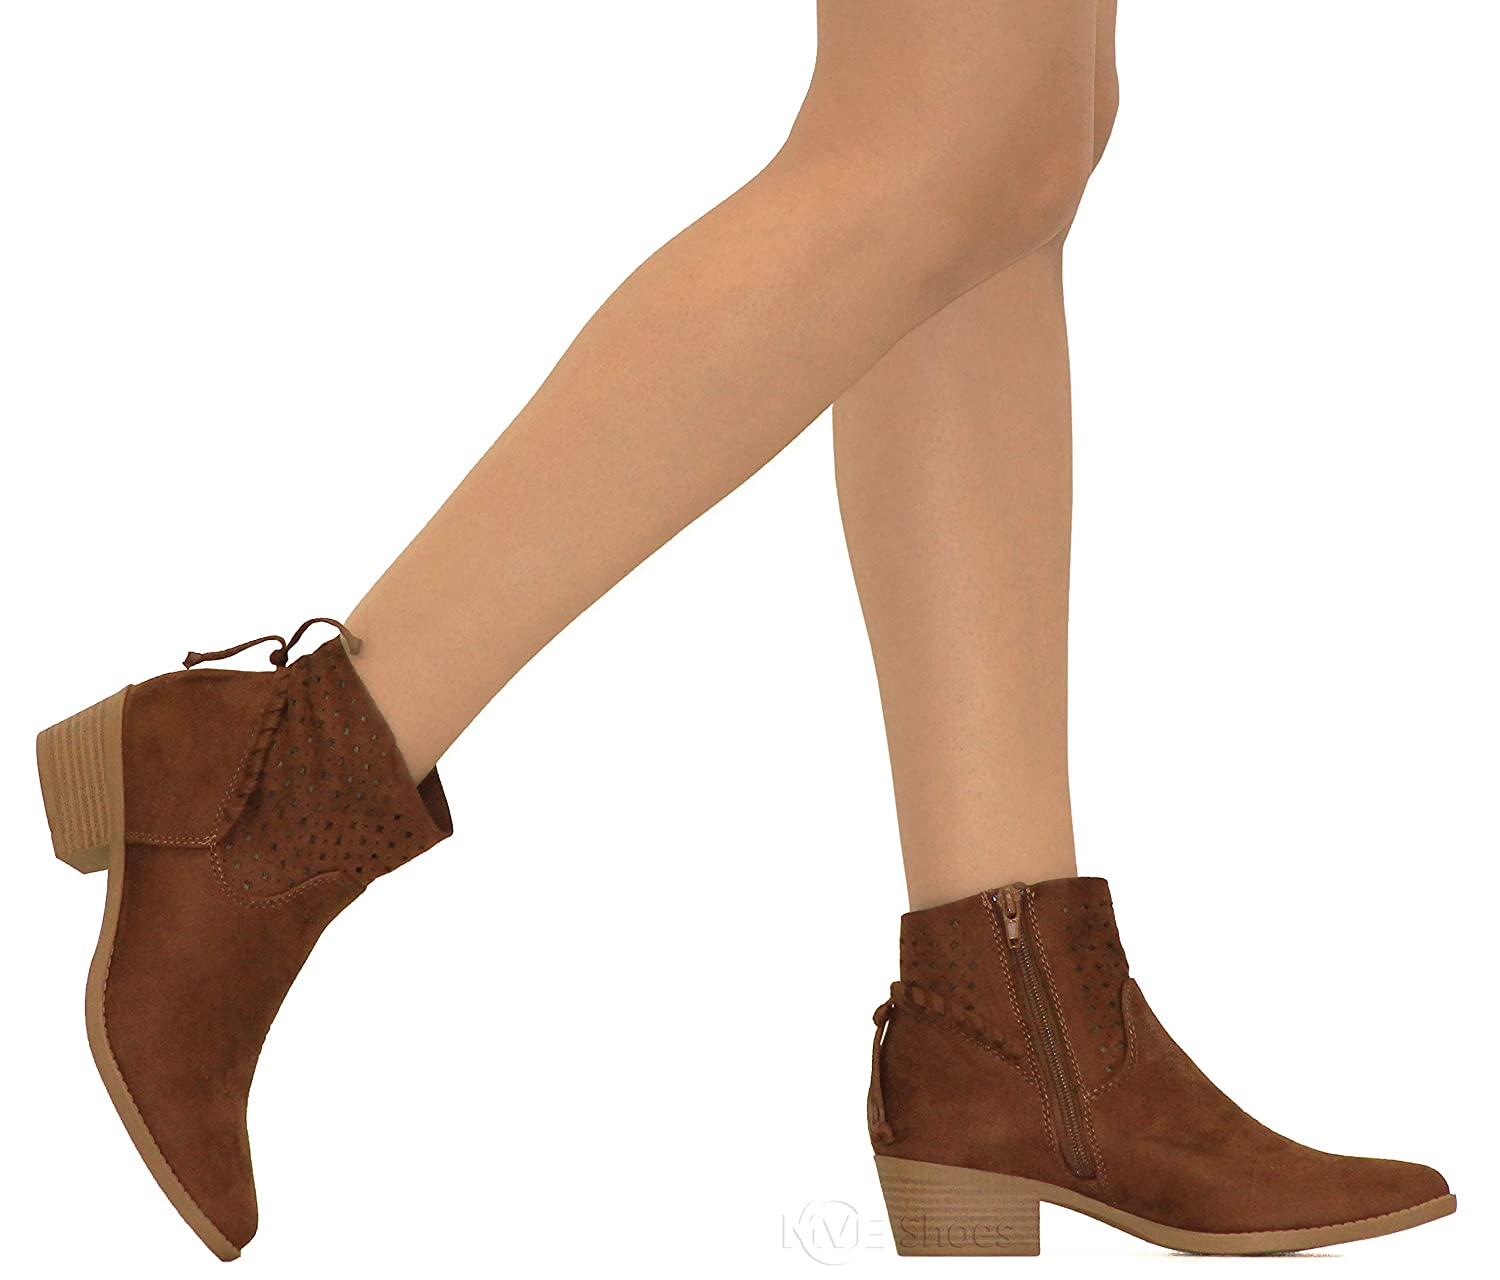 MVE Shoes Womens Chunky Heel Strappy Almond Toe Ankle Bootie